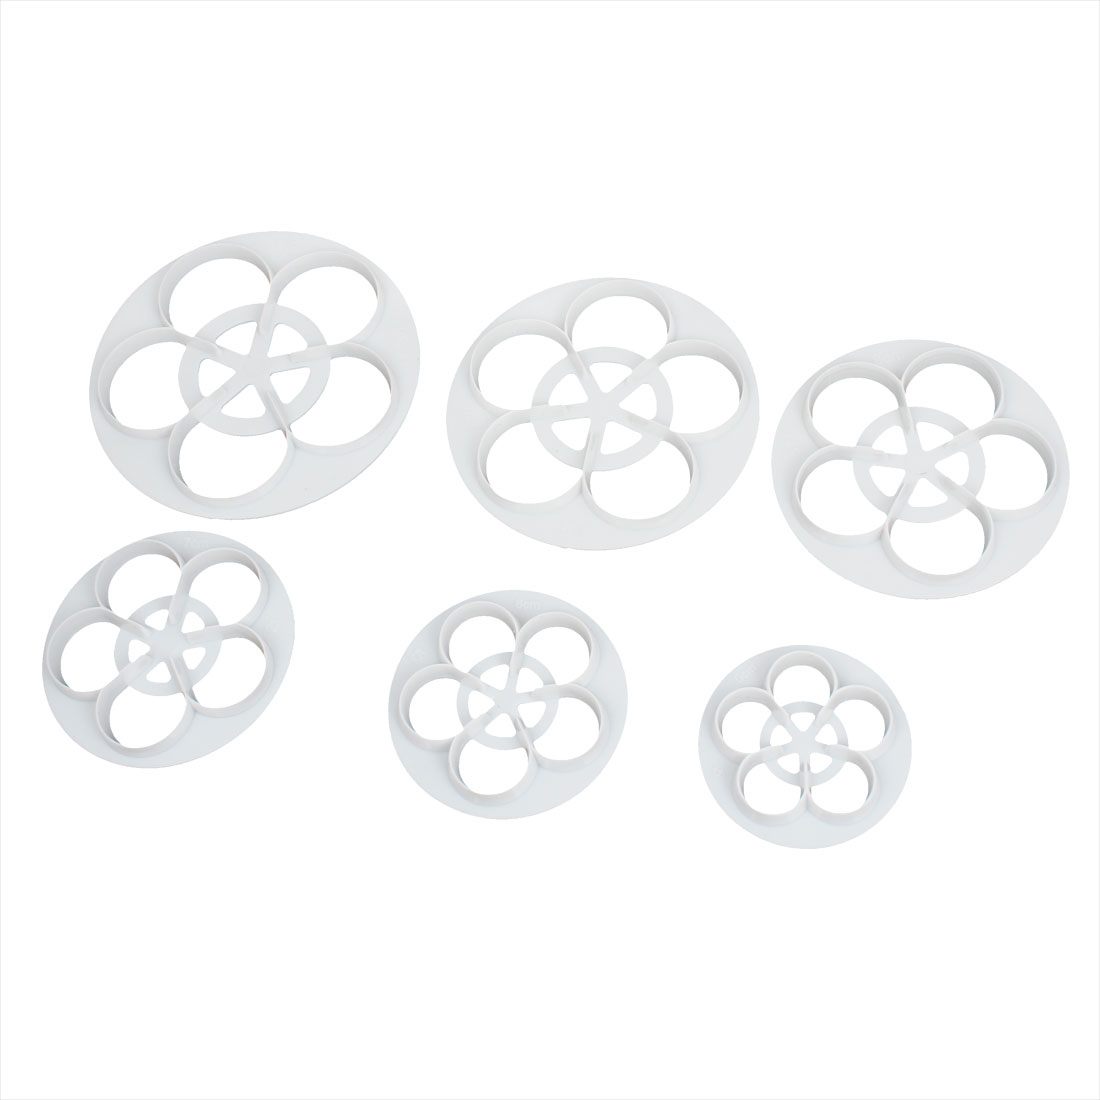 6 in 1 Kitchen DIY Cake Pastry Shaping Flower Style Cutter Mold White